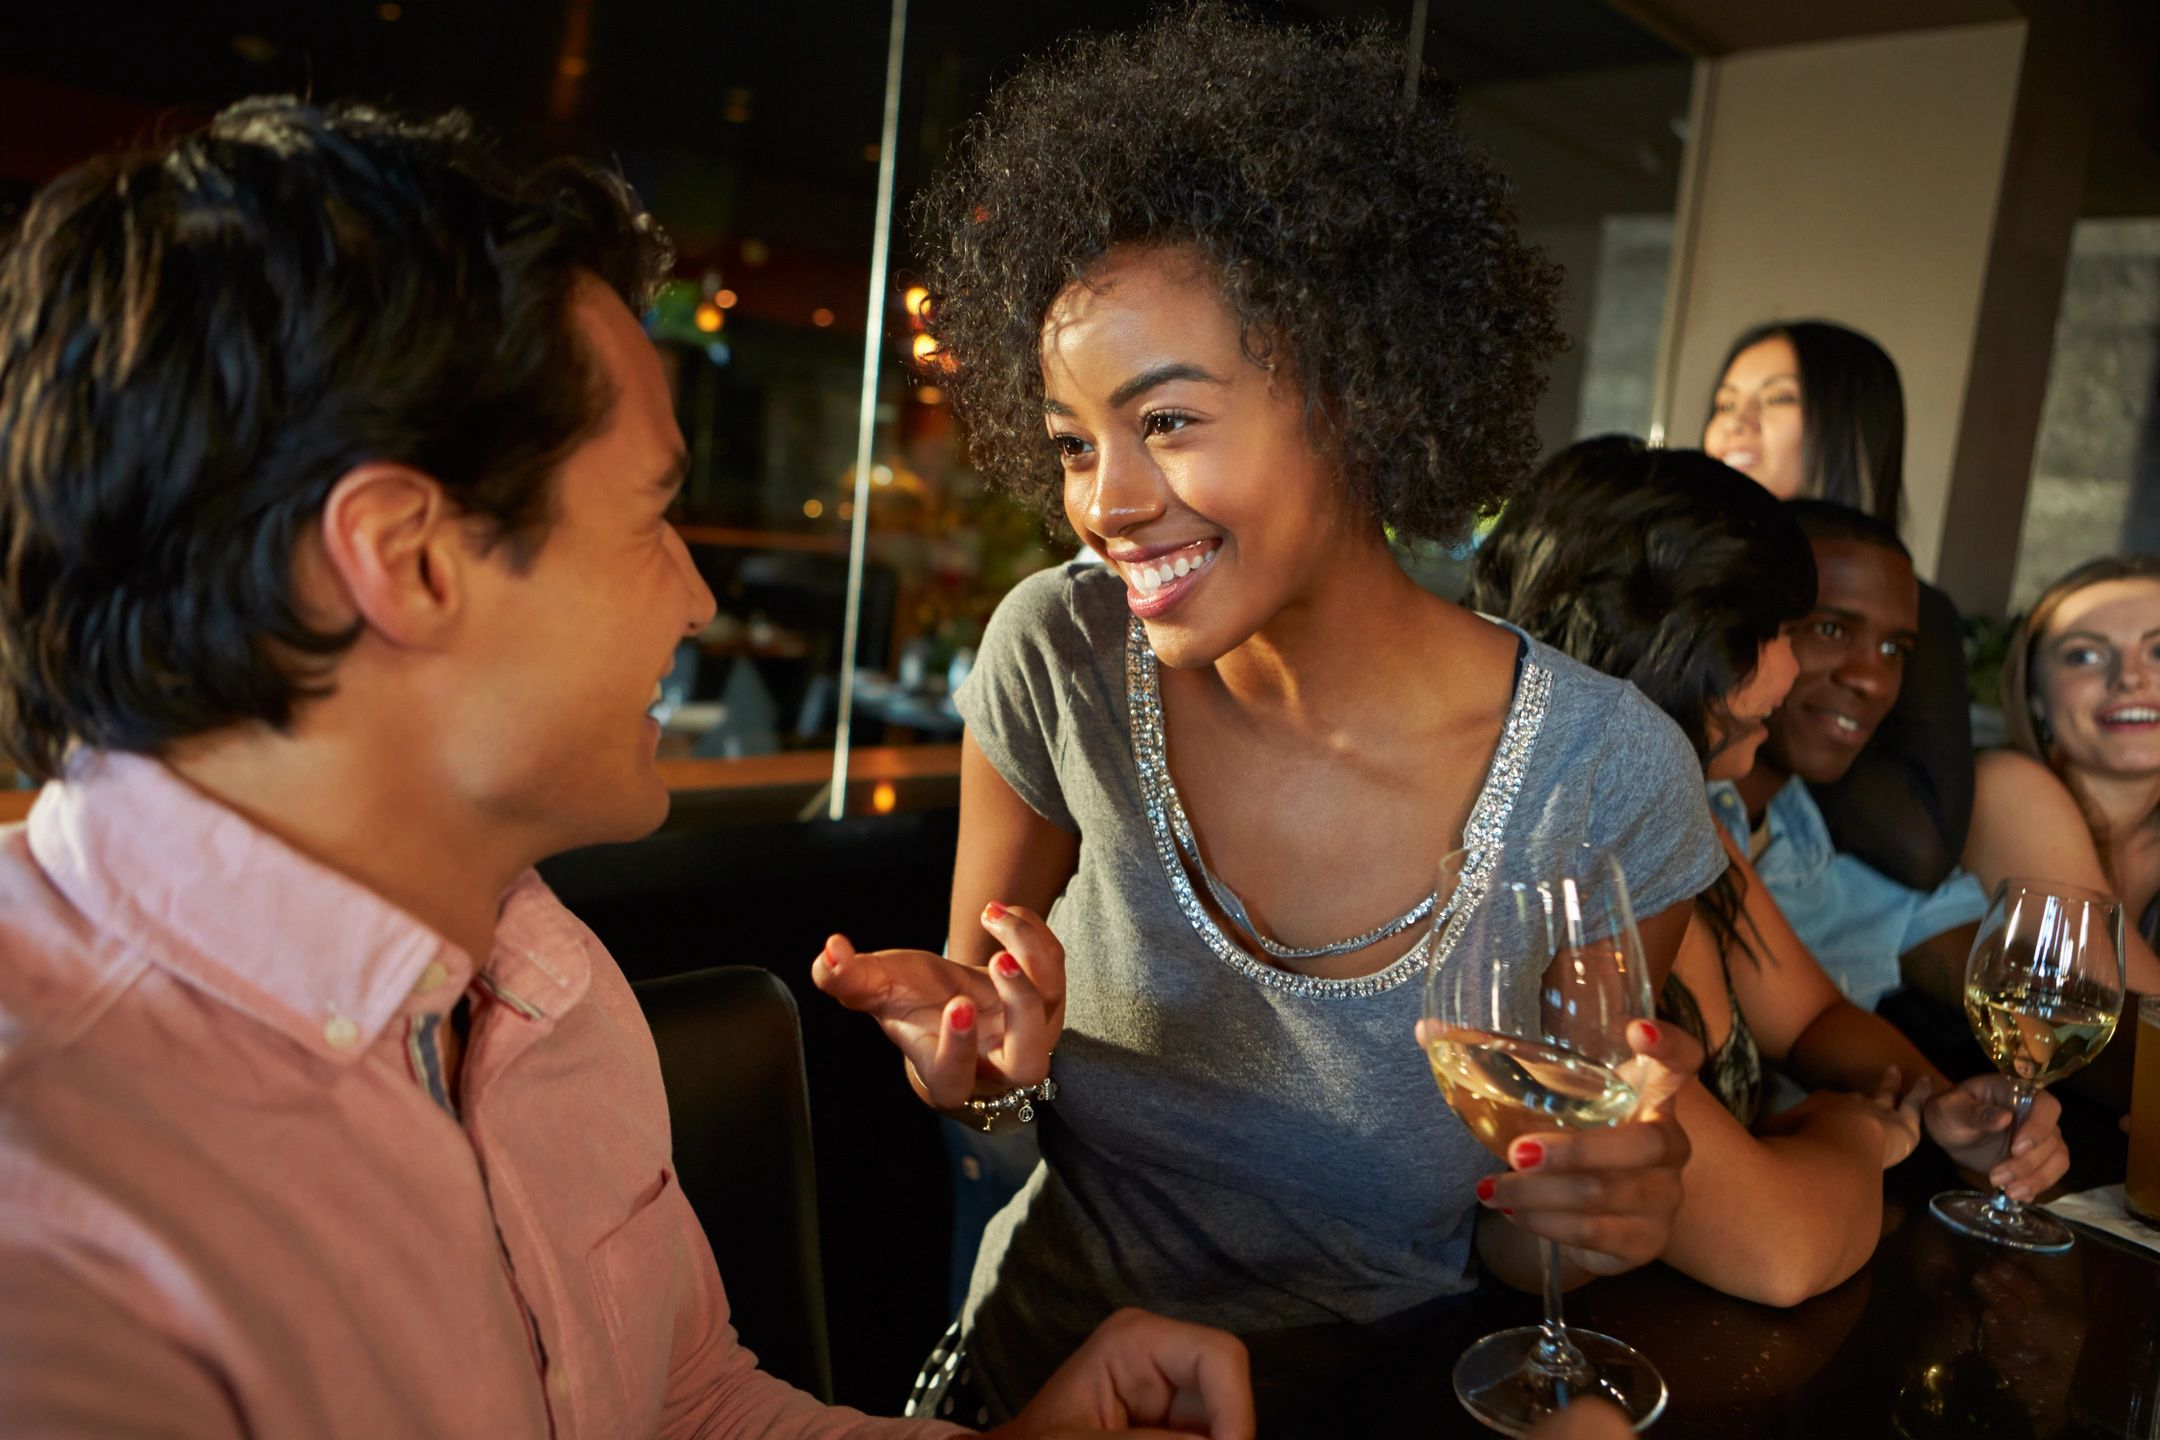 Why You Should Enjoy a Glass or Two of Wine Each Day